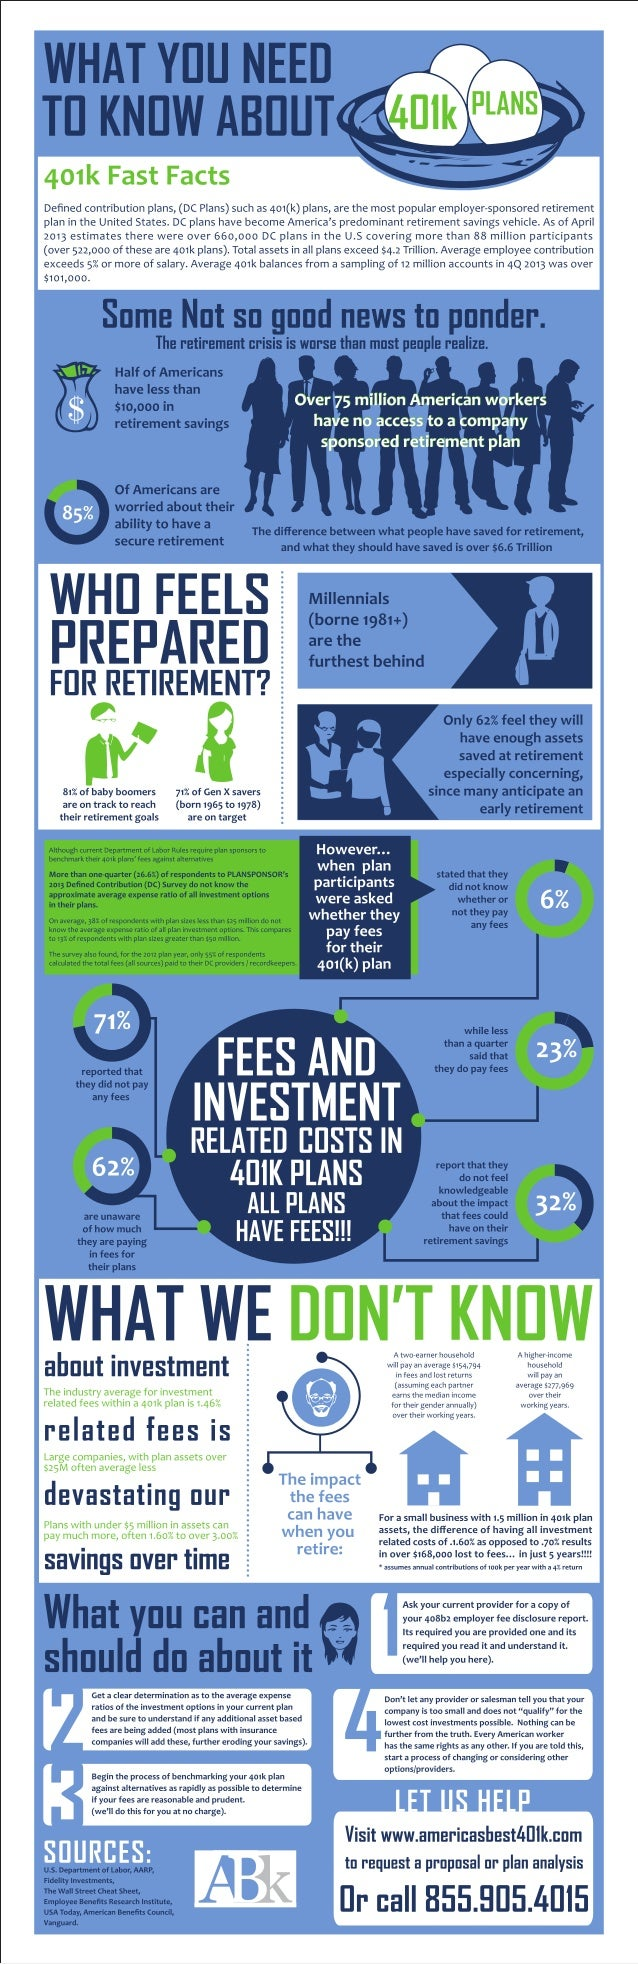 What you need to know about 401k plans....especially if you have one.